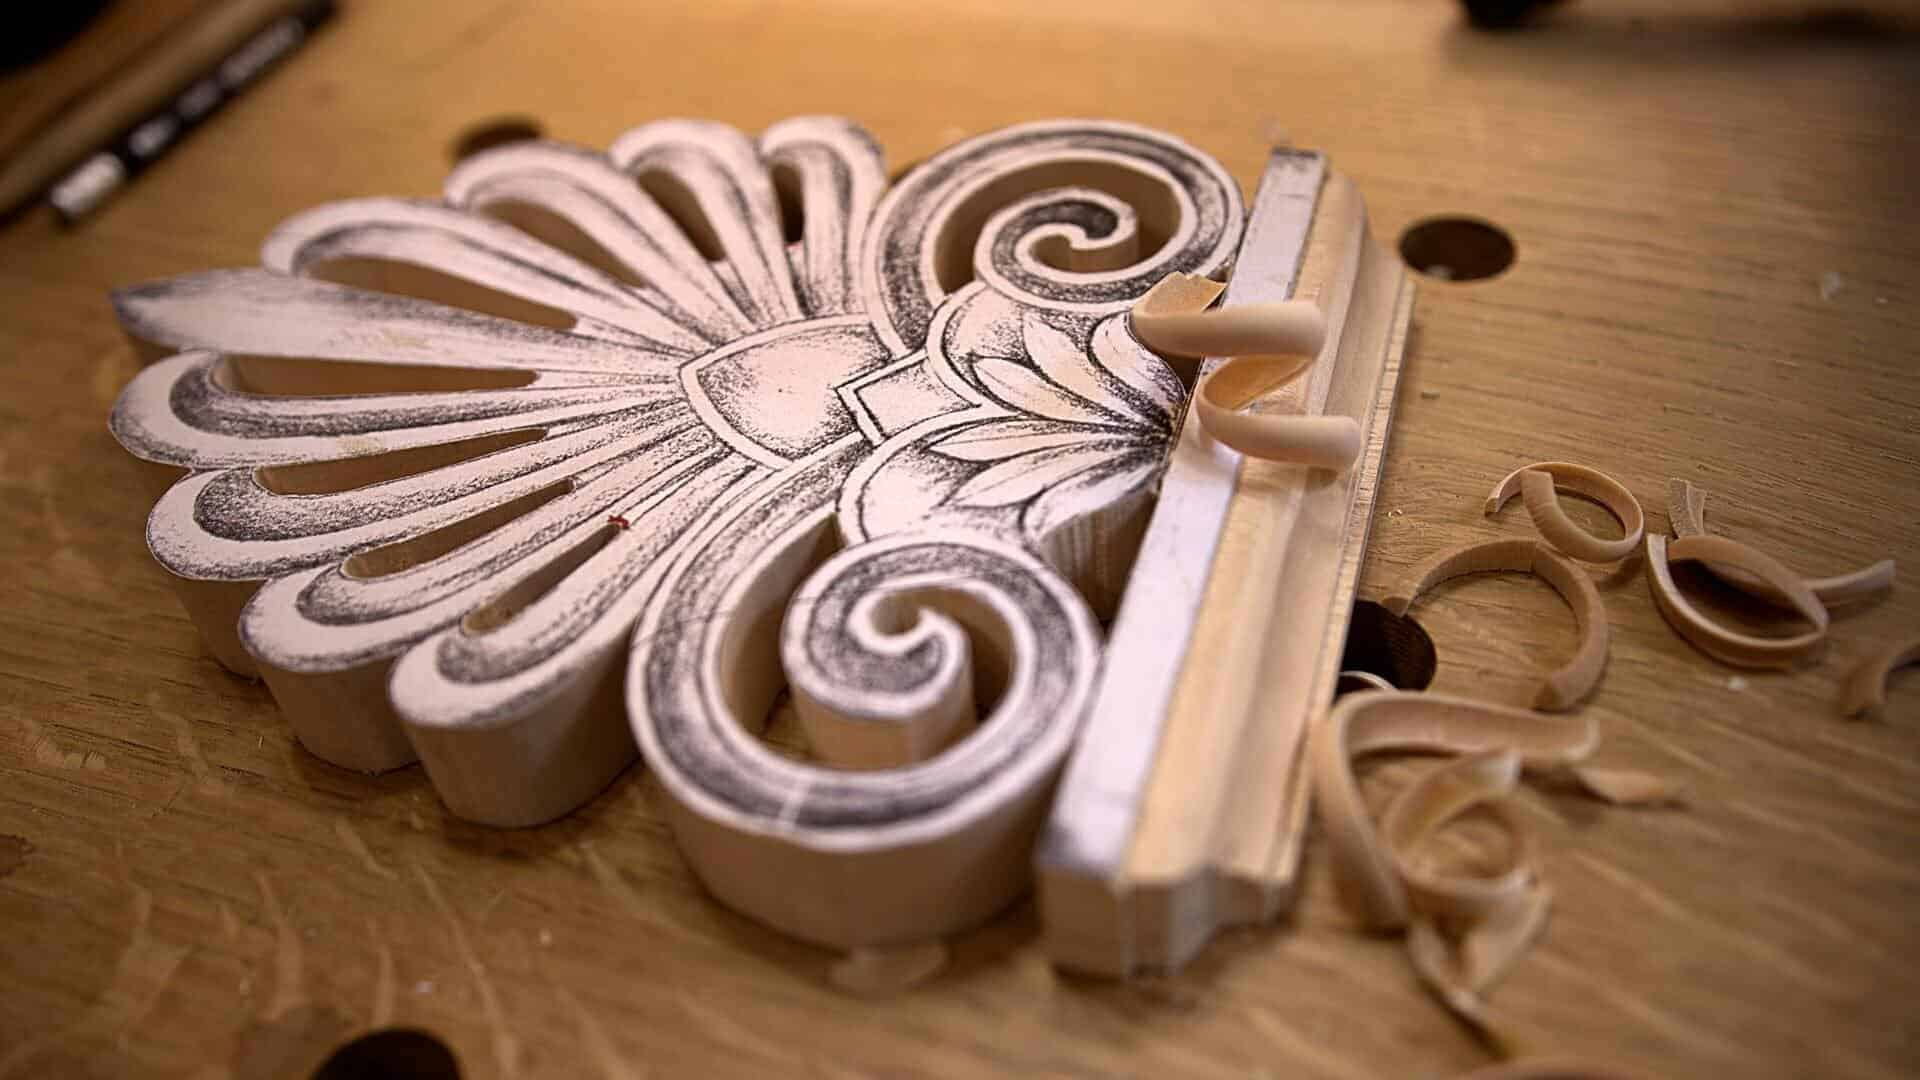 Carving Greek Style Acroterion School of Woodcarving https://schoolofwoodcarving.com/ #woodcarving #woodworking #architecturalcarving #furniturecarving @grabovetskiy